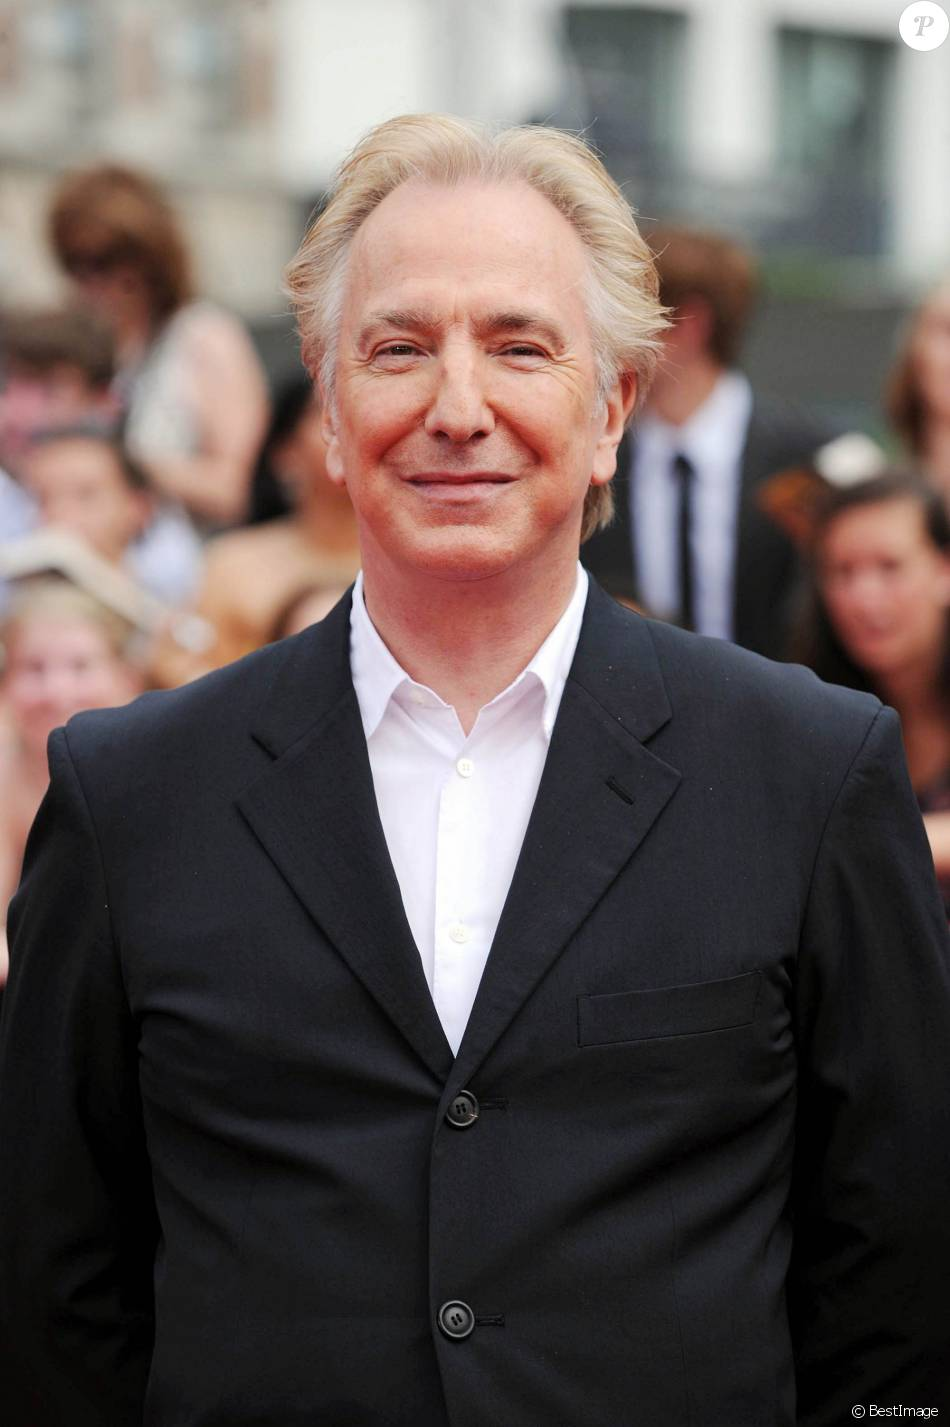 hindu single men in rickman Others walk on hot coals and give offerings of milk during the hindu  106, who has never been on a single  archive papers reveal alan rickman's frustration.